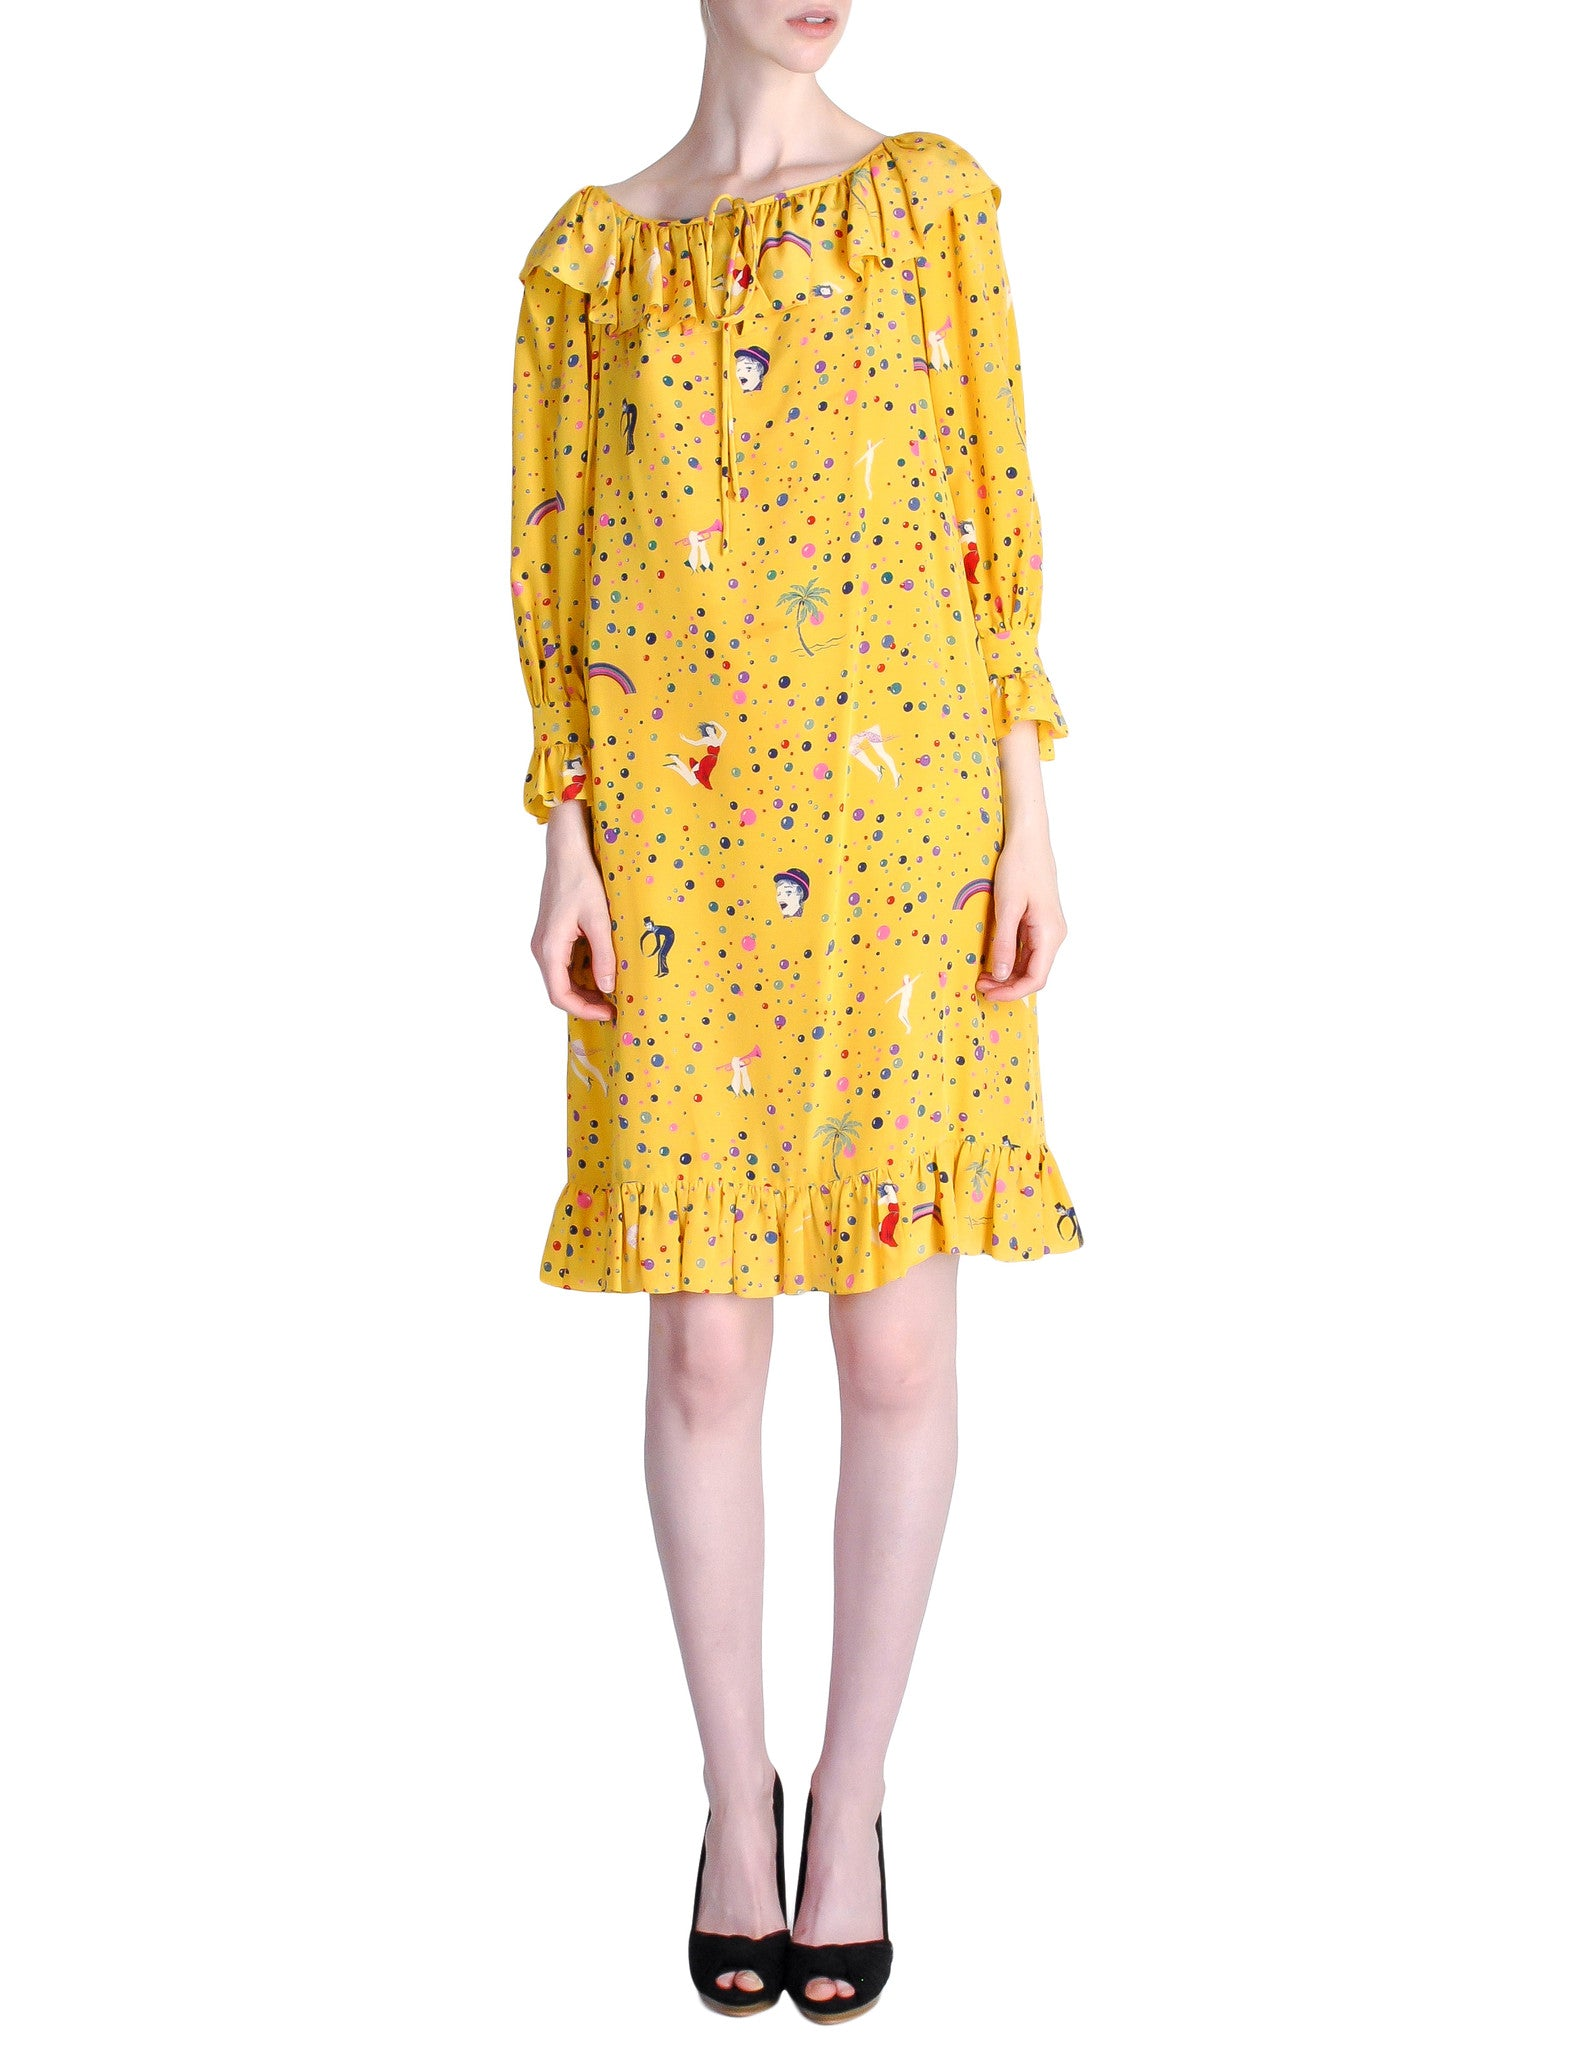 Ungaro Vintage 1970s Bright Yellow Carnival Bubble Print Dress - Amarcord Vintage Fashion  - 1